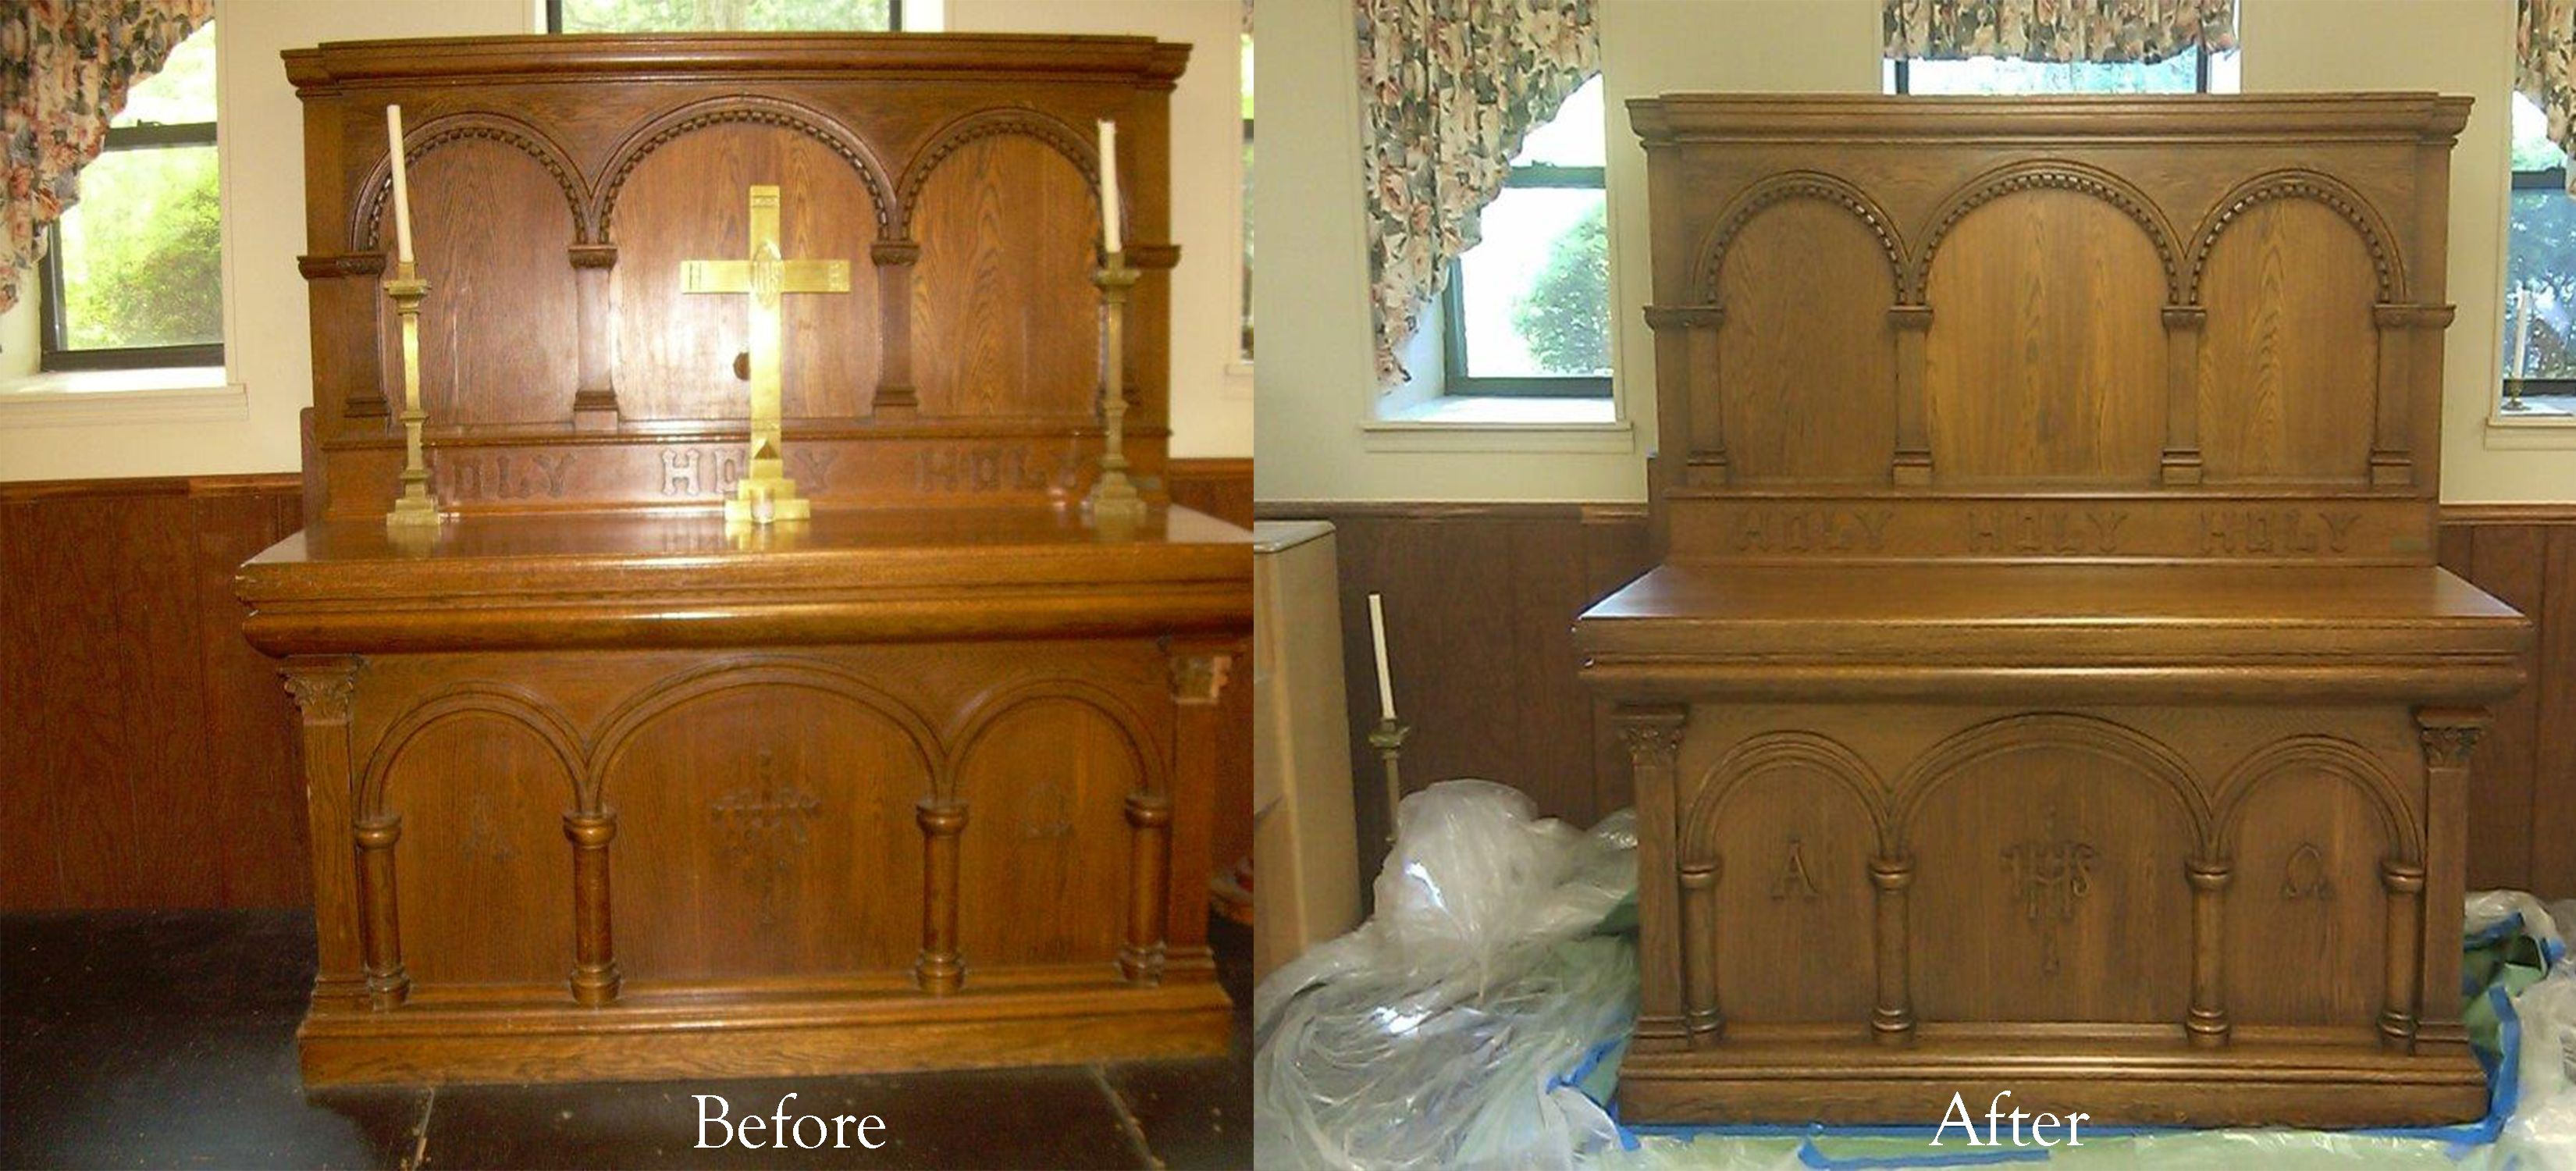 Before and after photos from Good Shepherd in Pearl River, NY. Work performed by Furniture Medic by WoodLord Restorations.